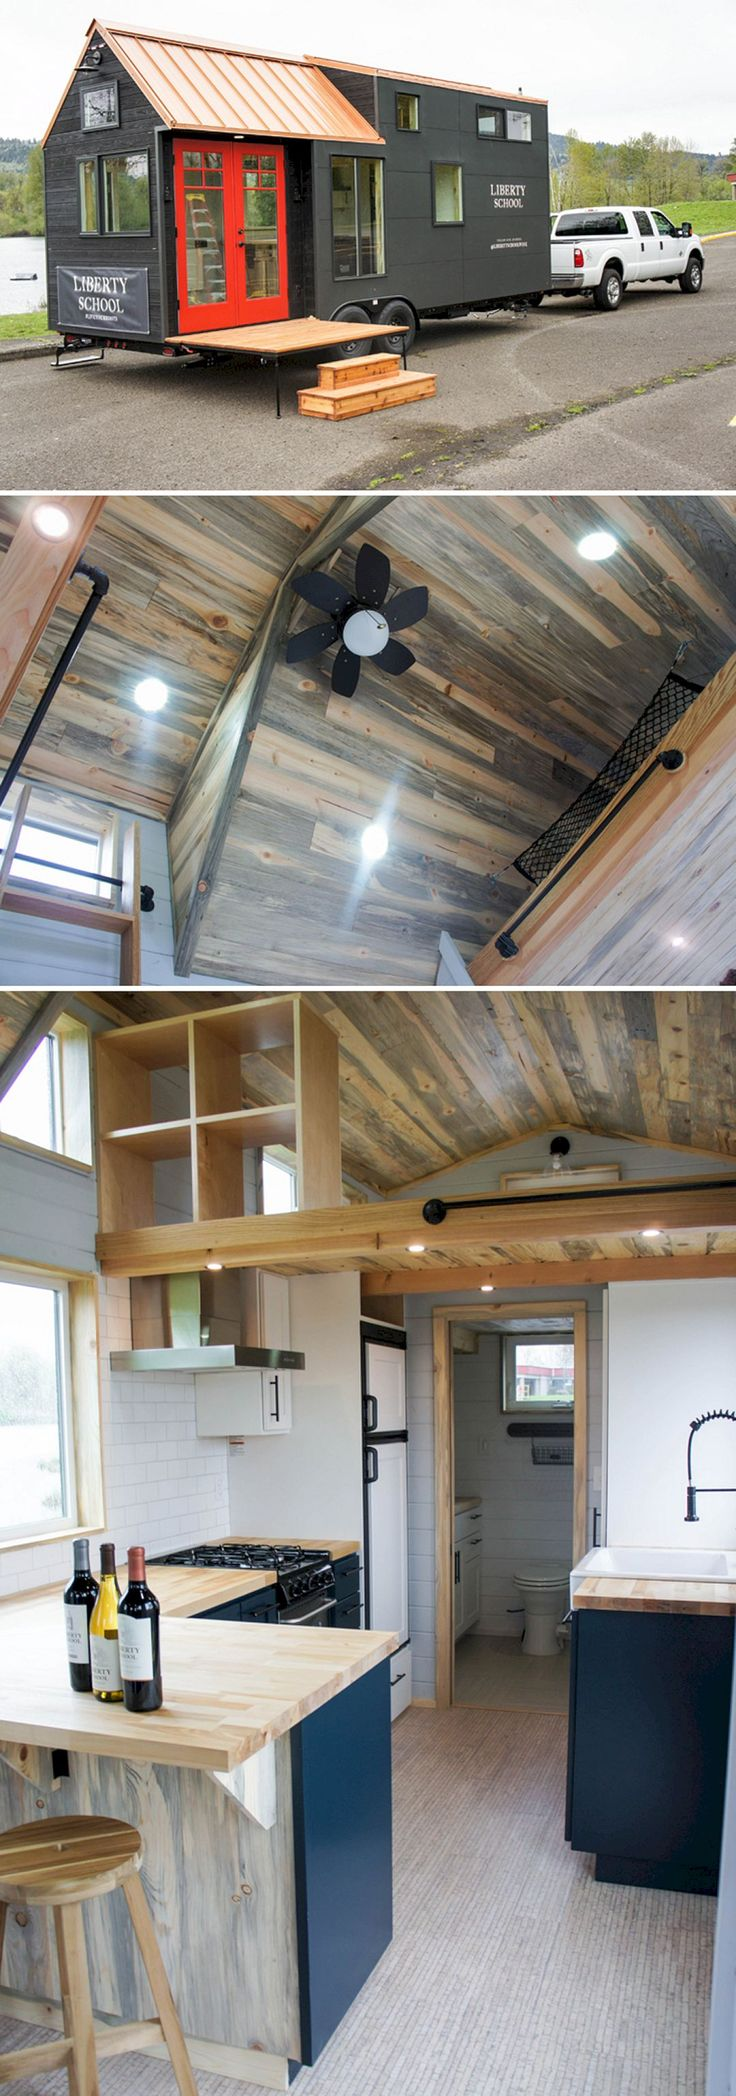 2992 best tiny houses images on pinterest small houses tiny